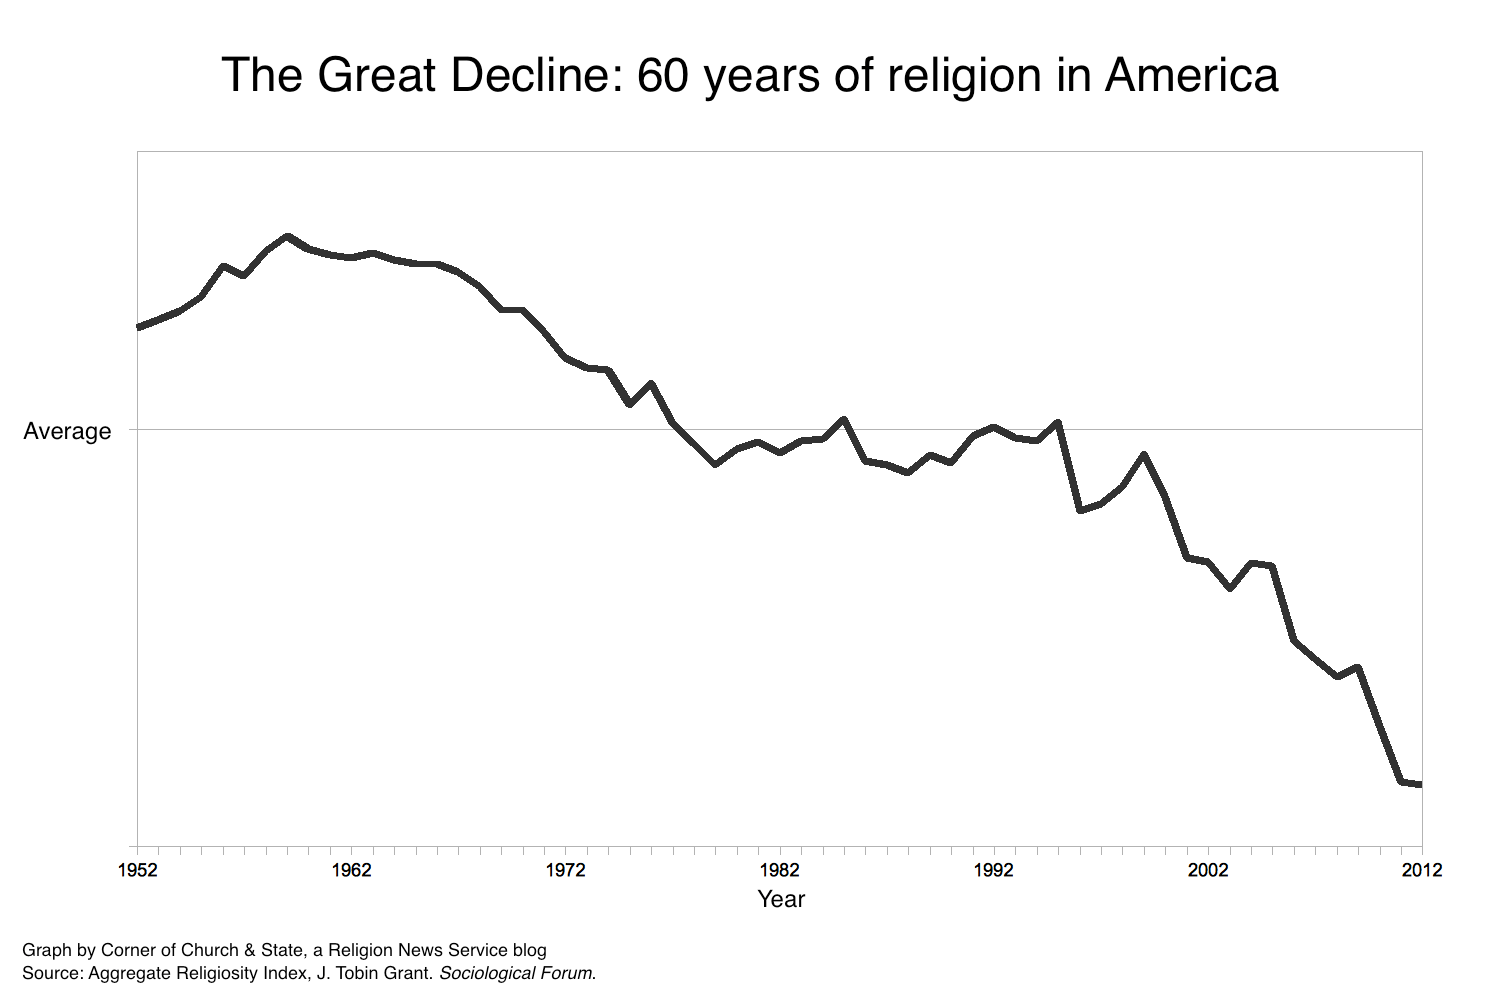 Kinder Küche Kirche As Scientific Law The Great Decline 60 Years Of Religion In One Graph Religion